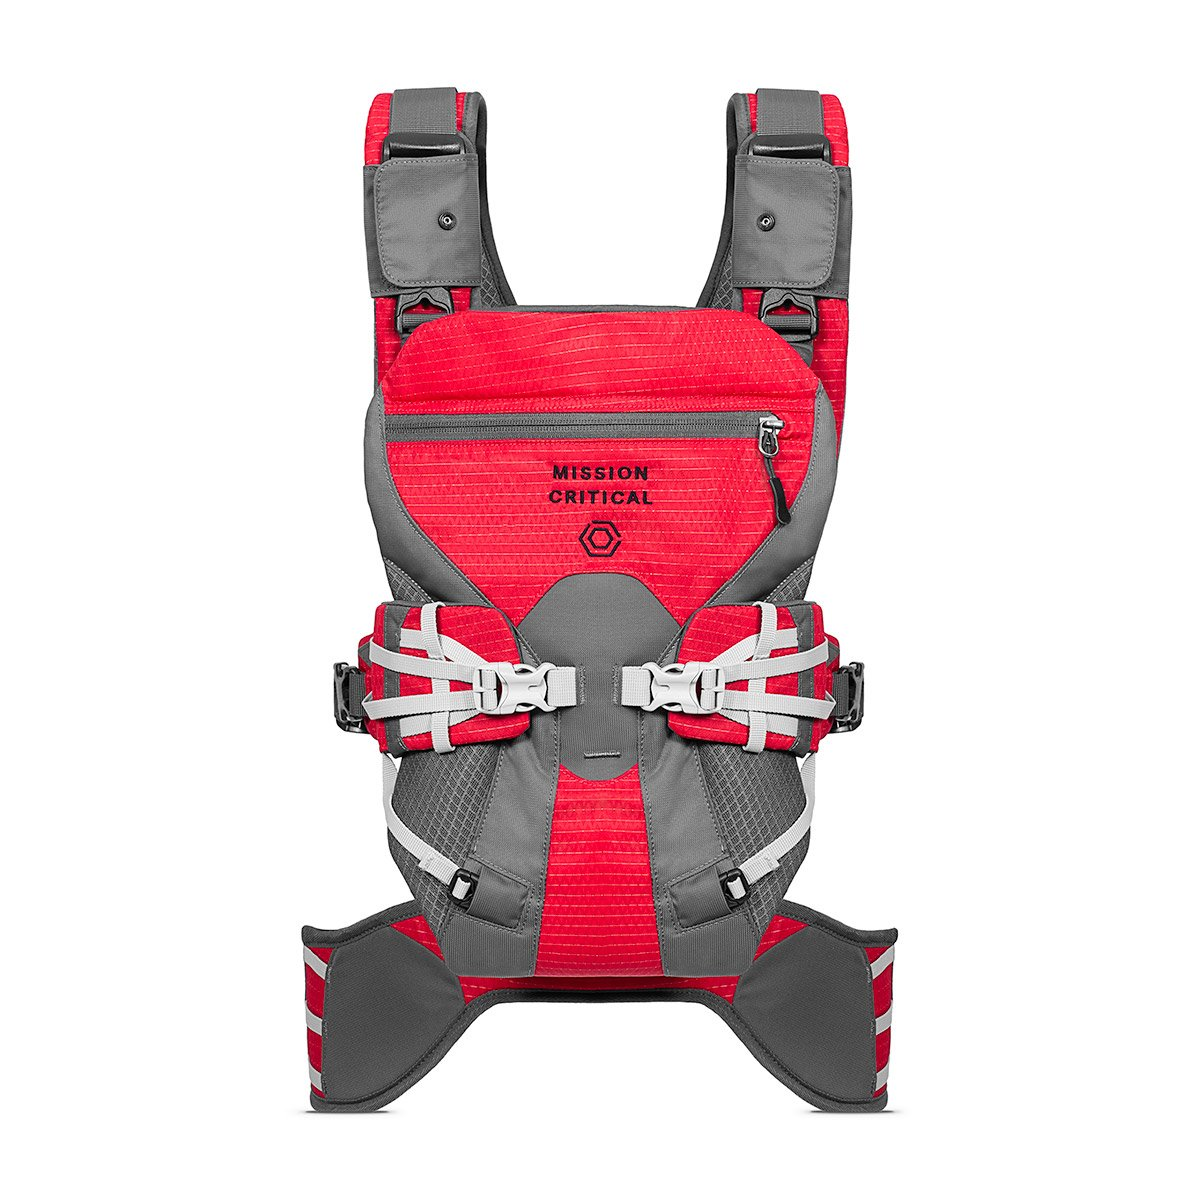 S.02 Adventure Baby Carrier - Expedition Kit